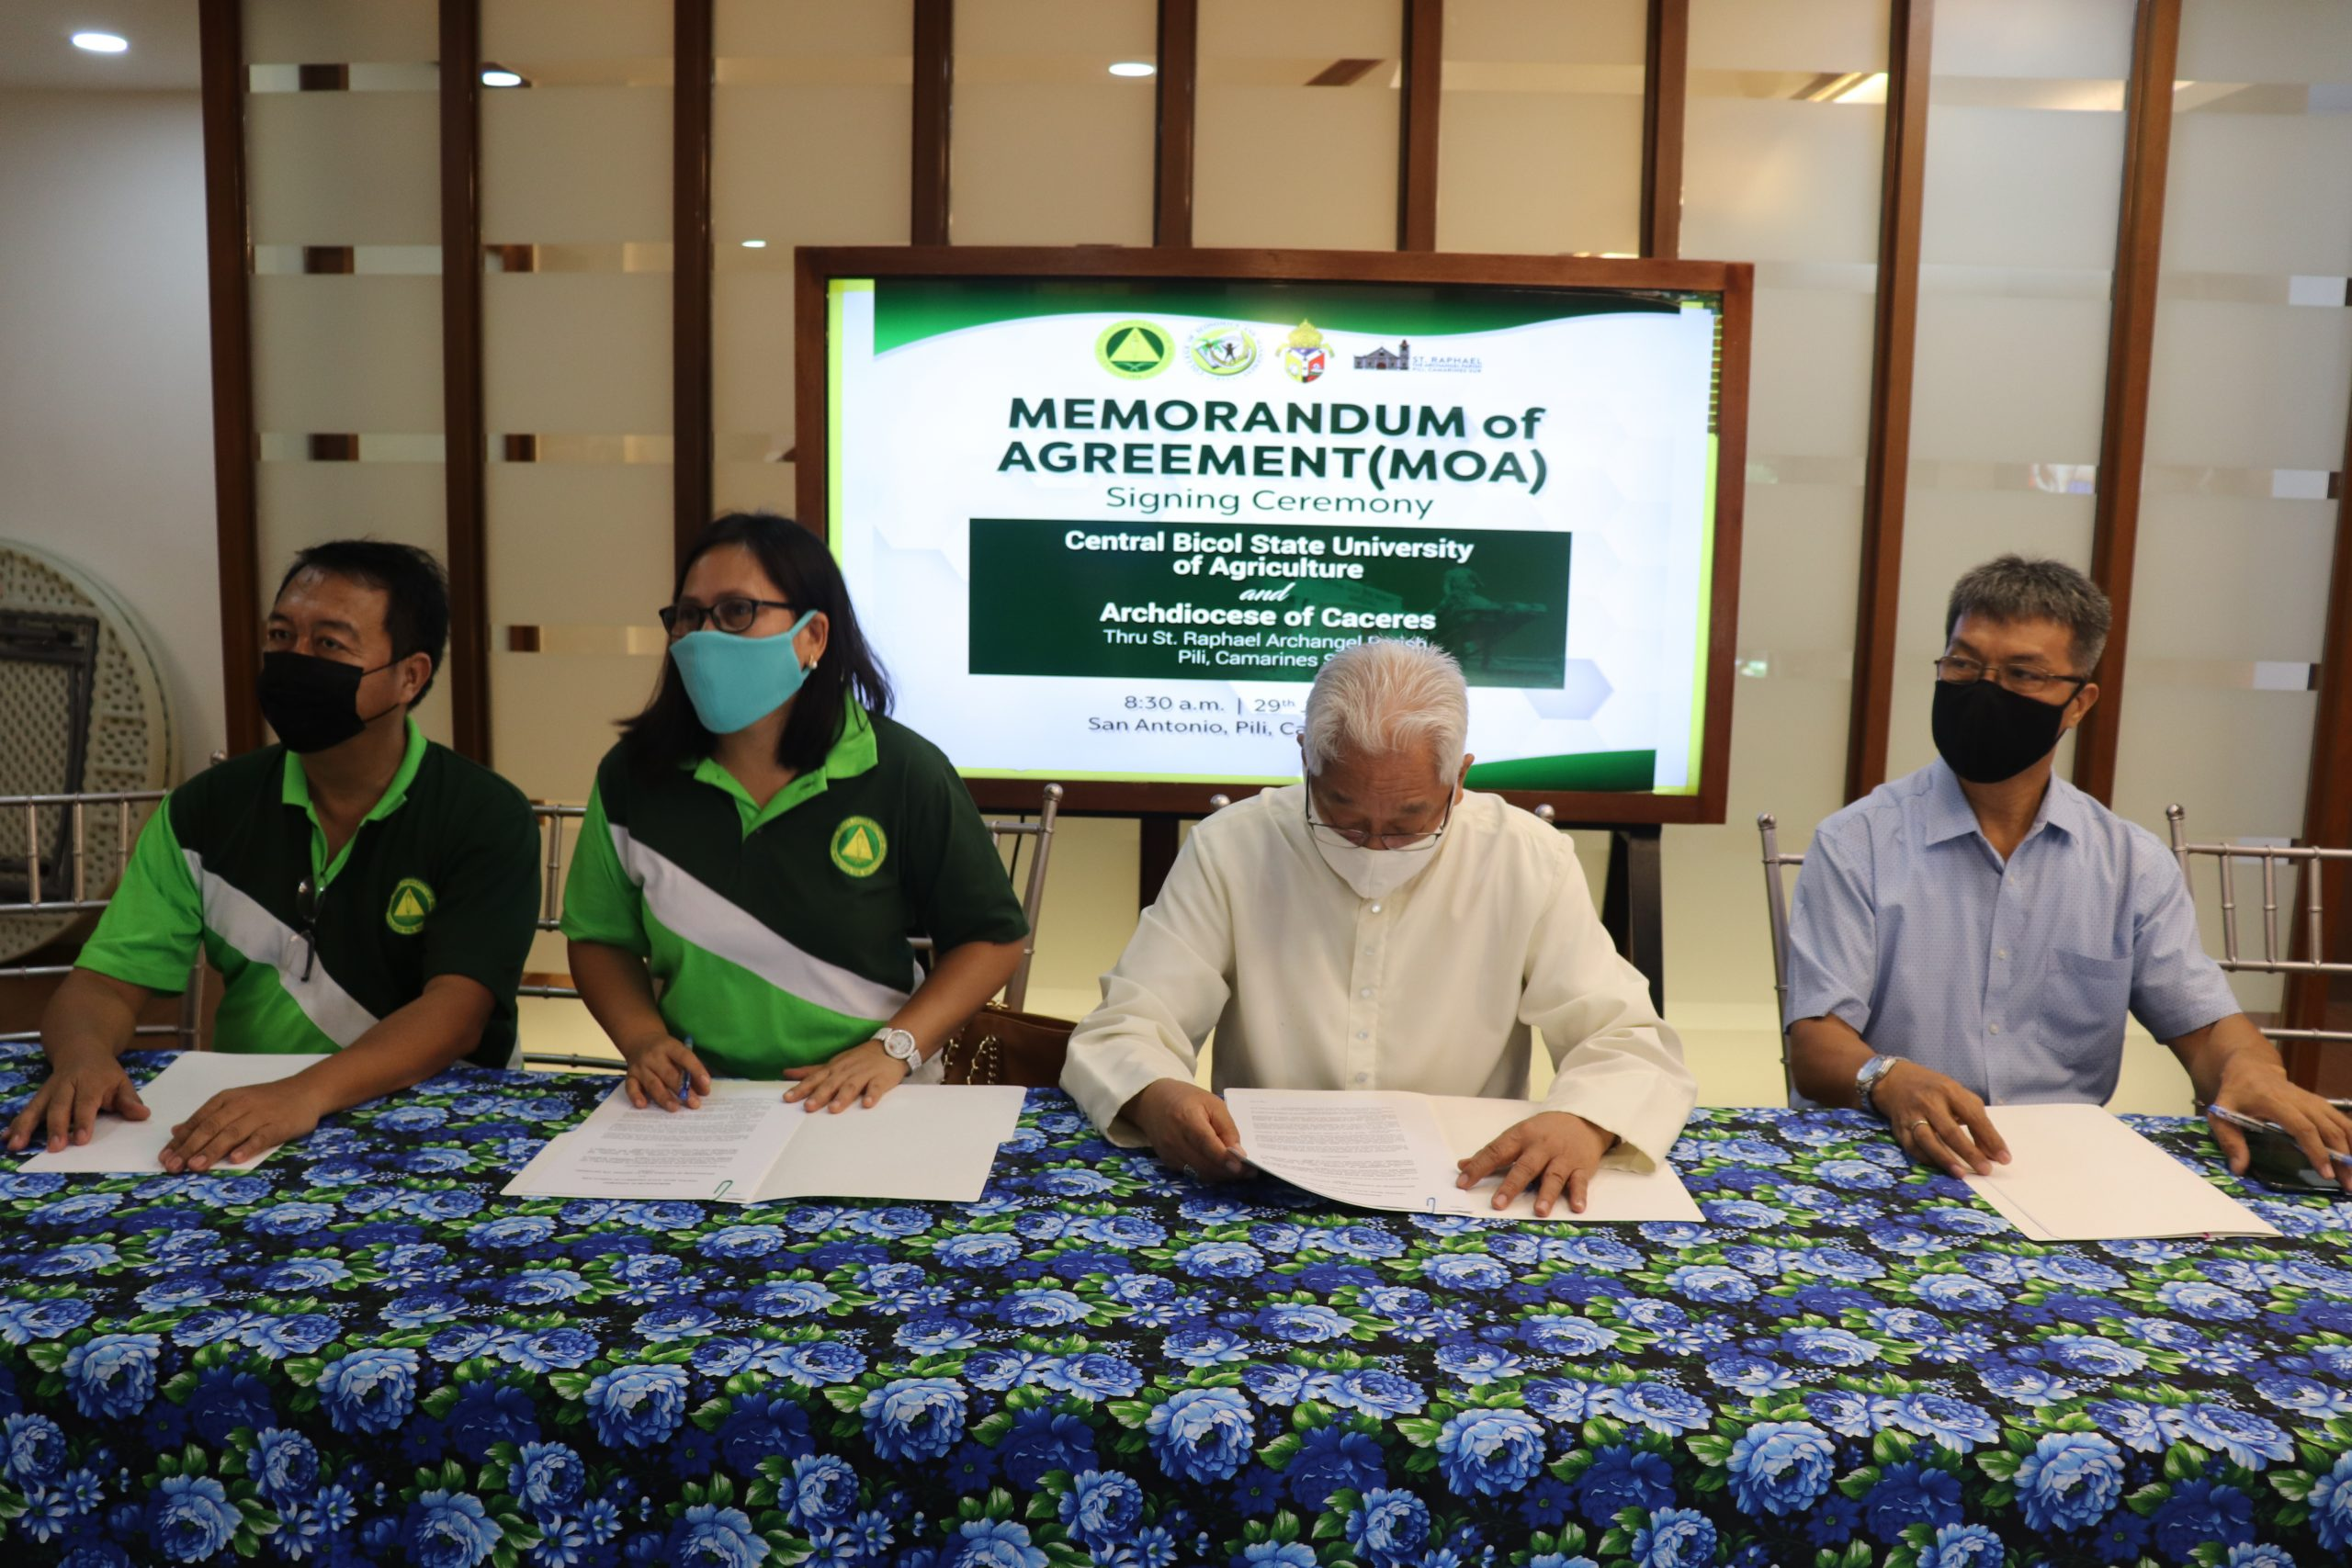 Memorandum of Agreement between CBSUA and Archdiocese of Caceres